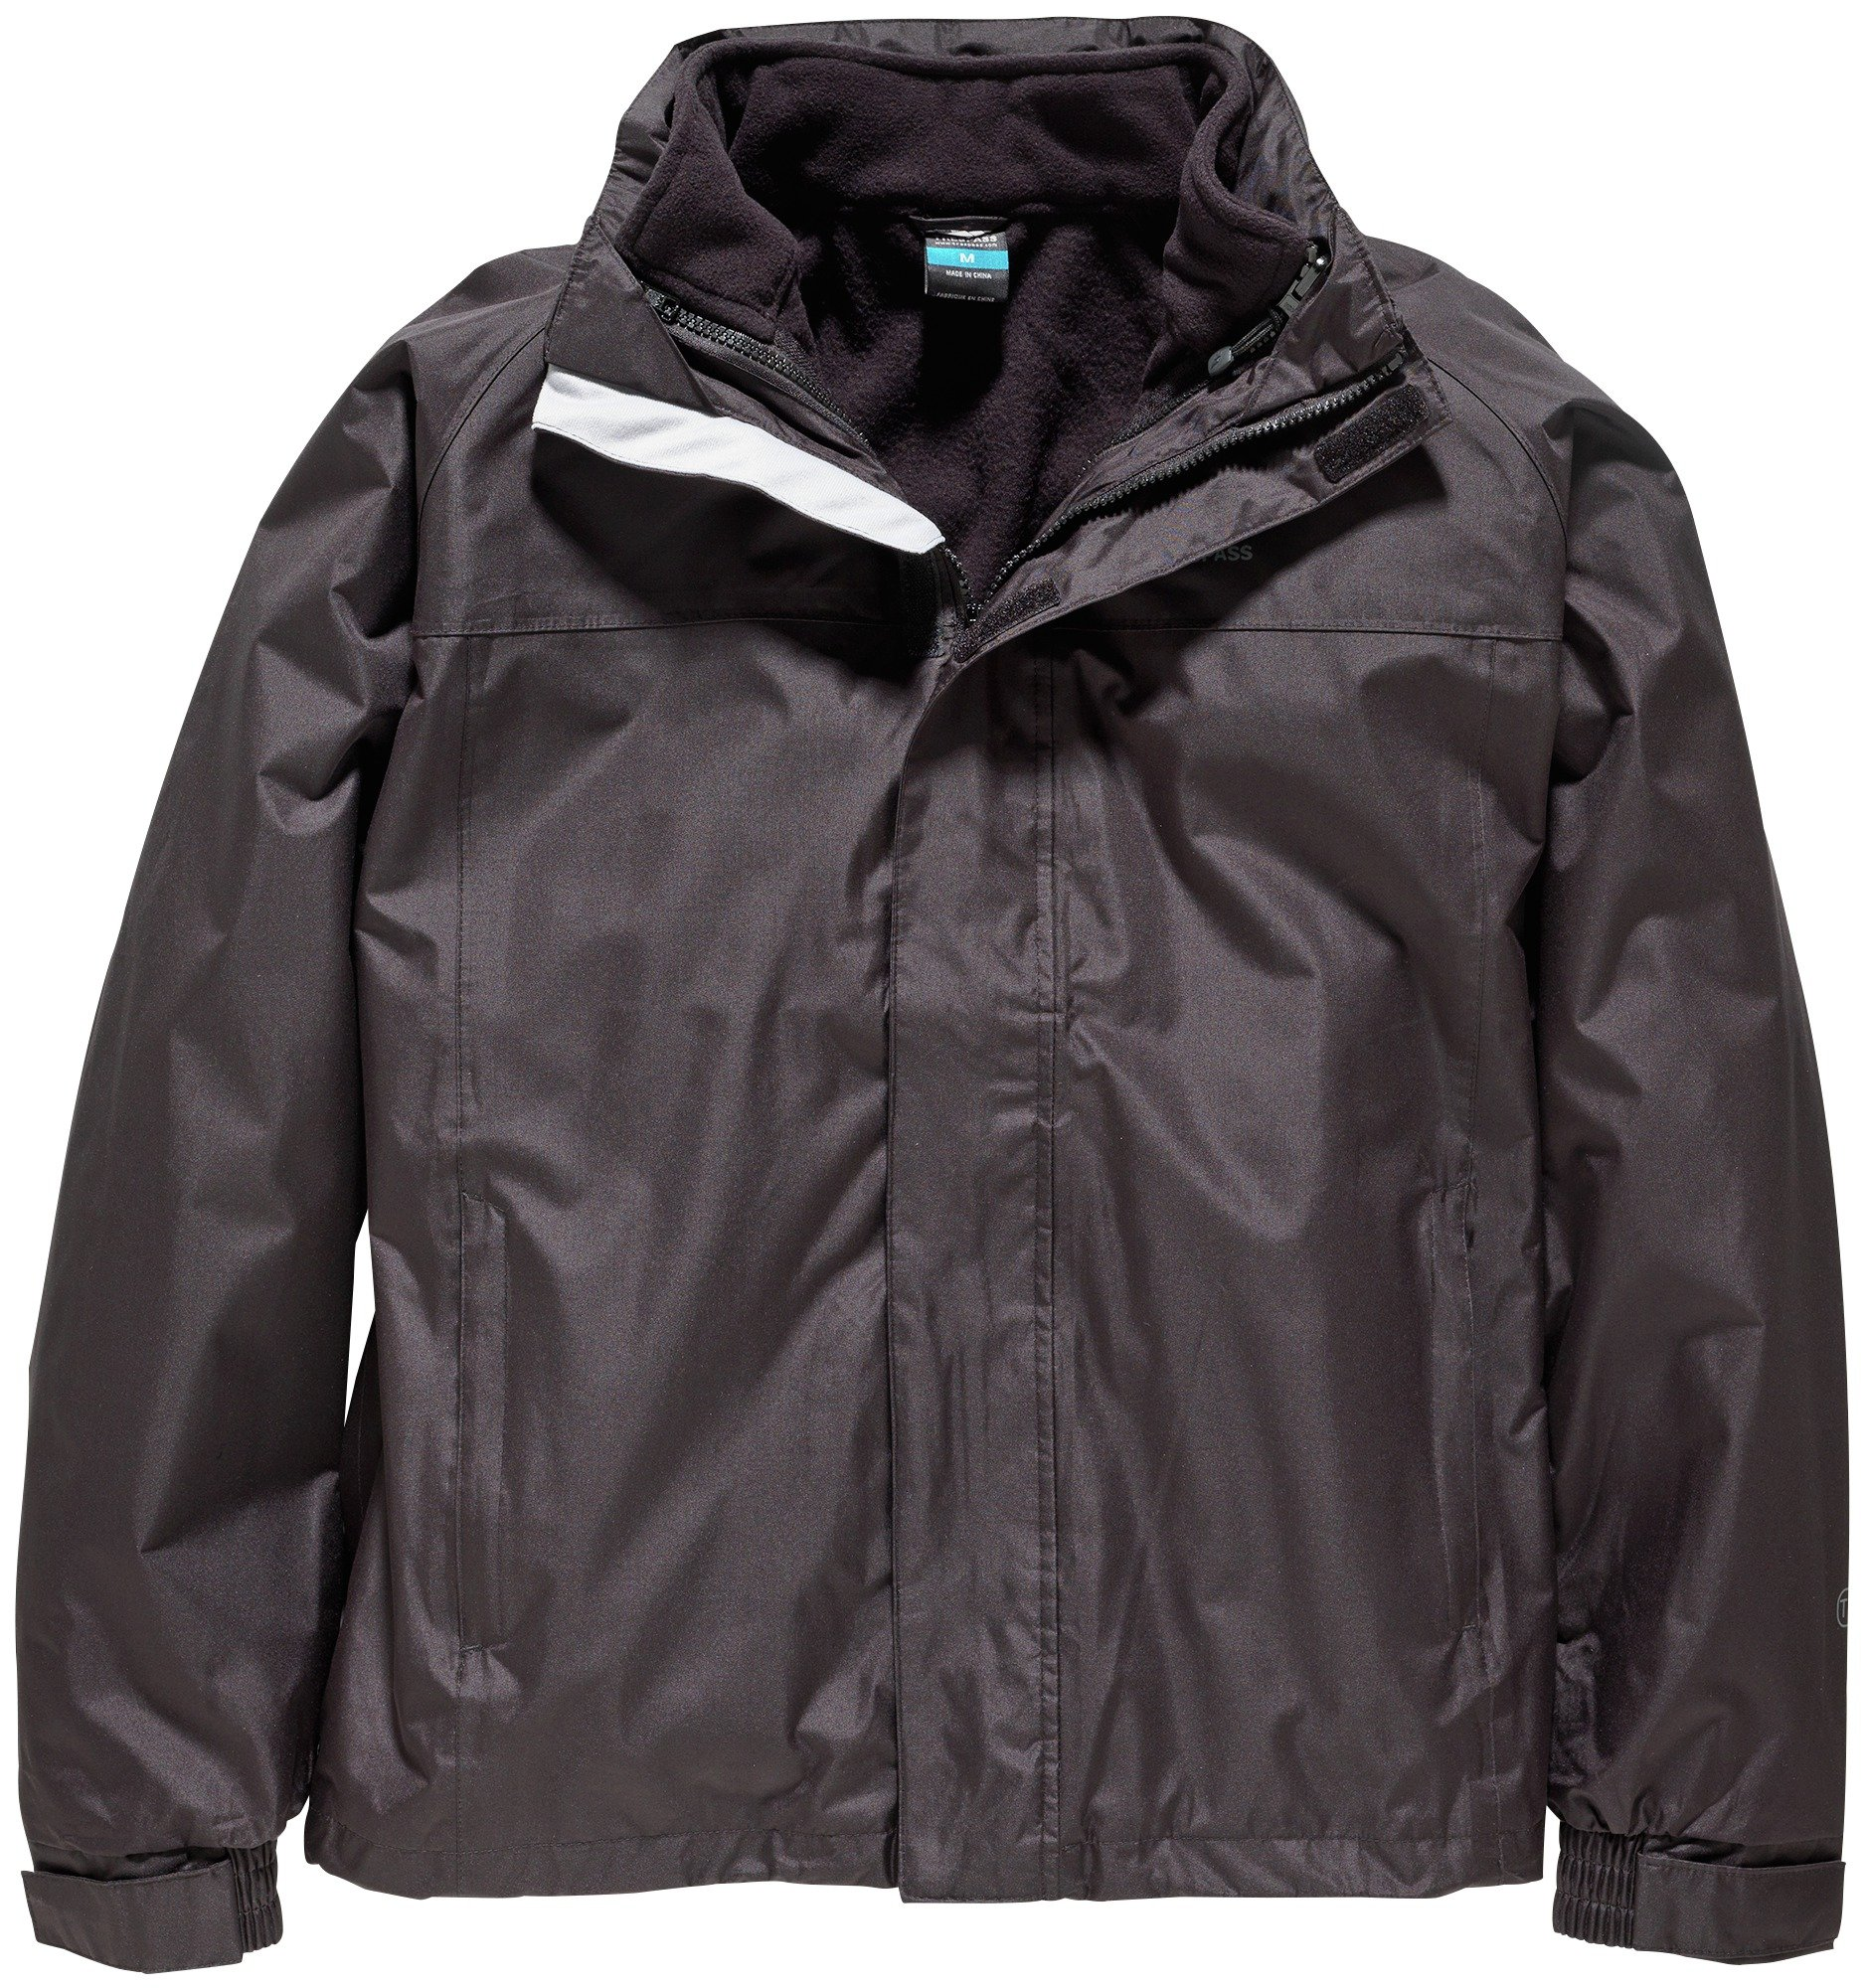 Image of Trespass Black 3 in 1 Jacket - Small